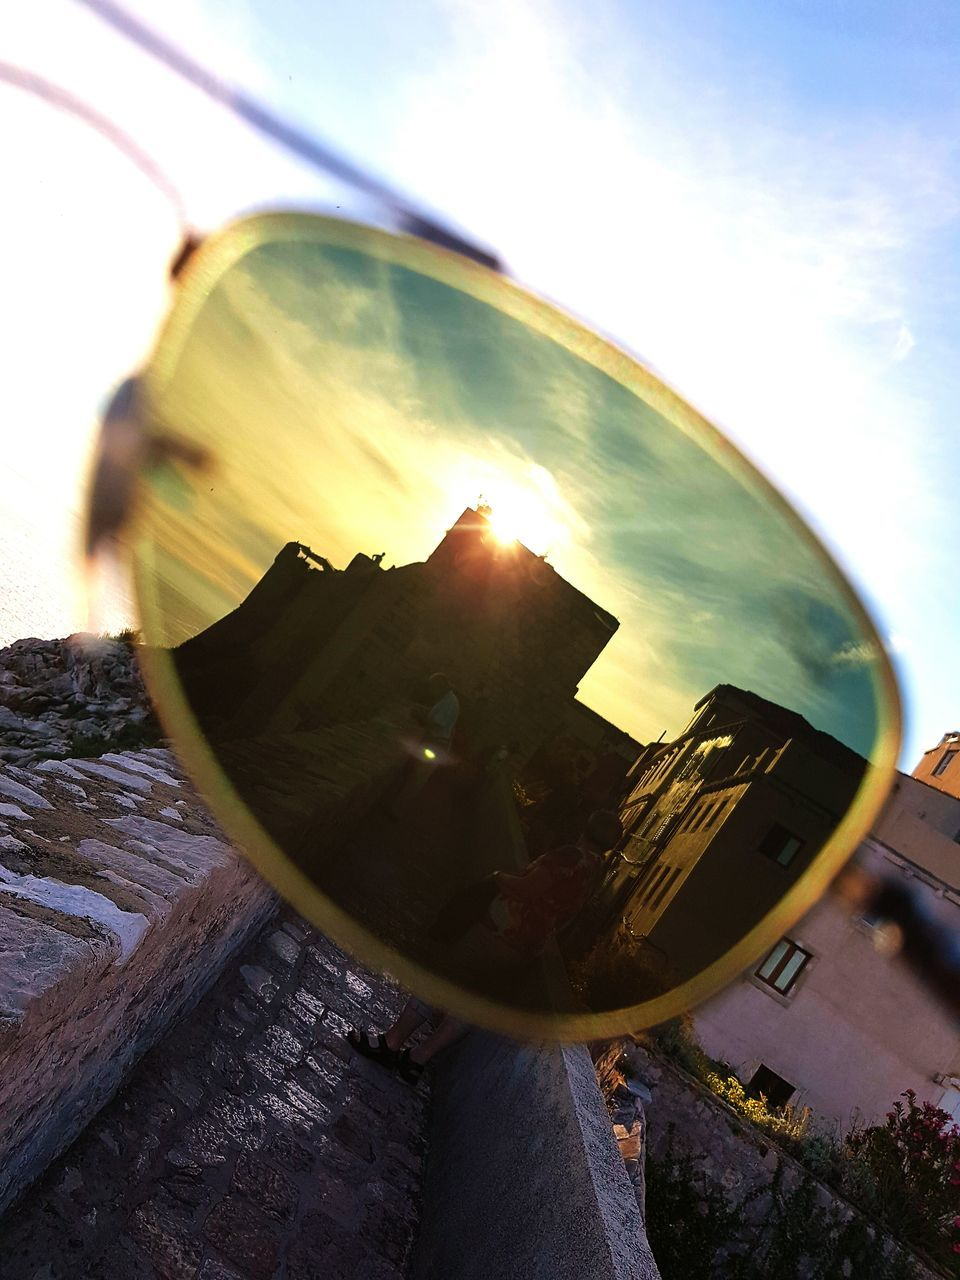 reflection, no people, outdoors, sky, day, fish-eye lens, close-up, nature